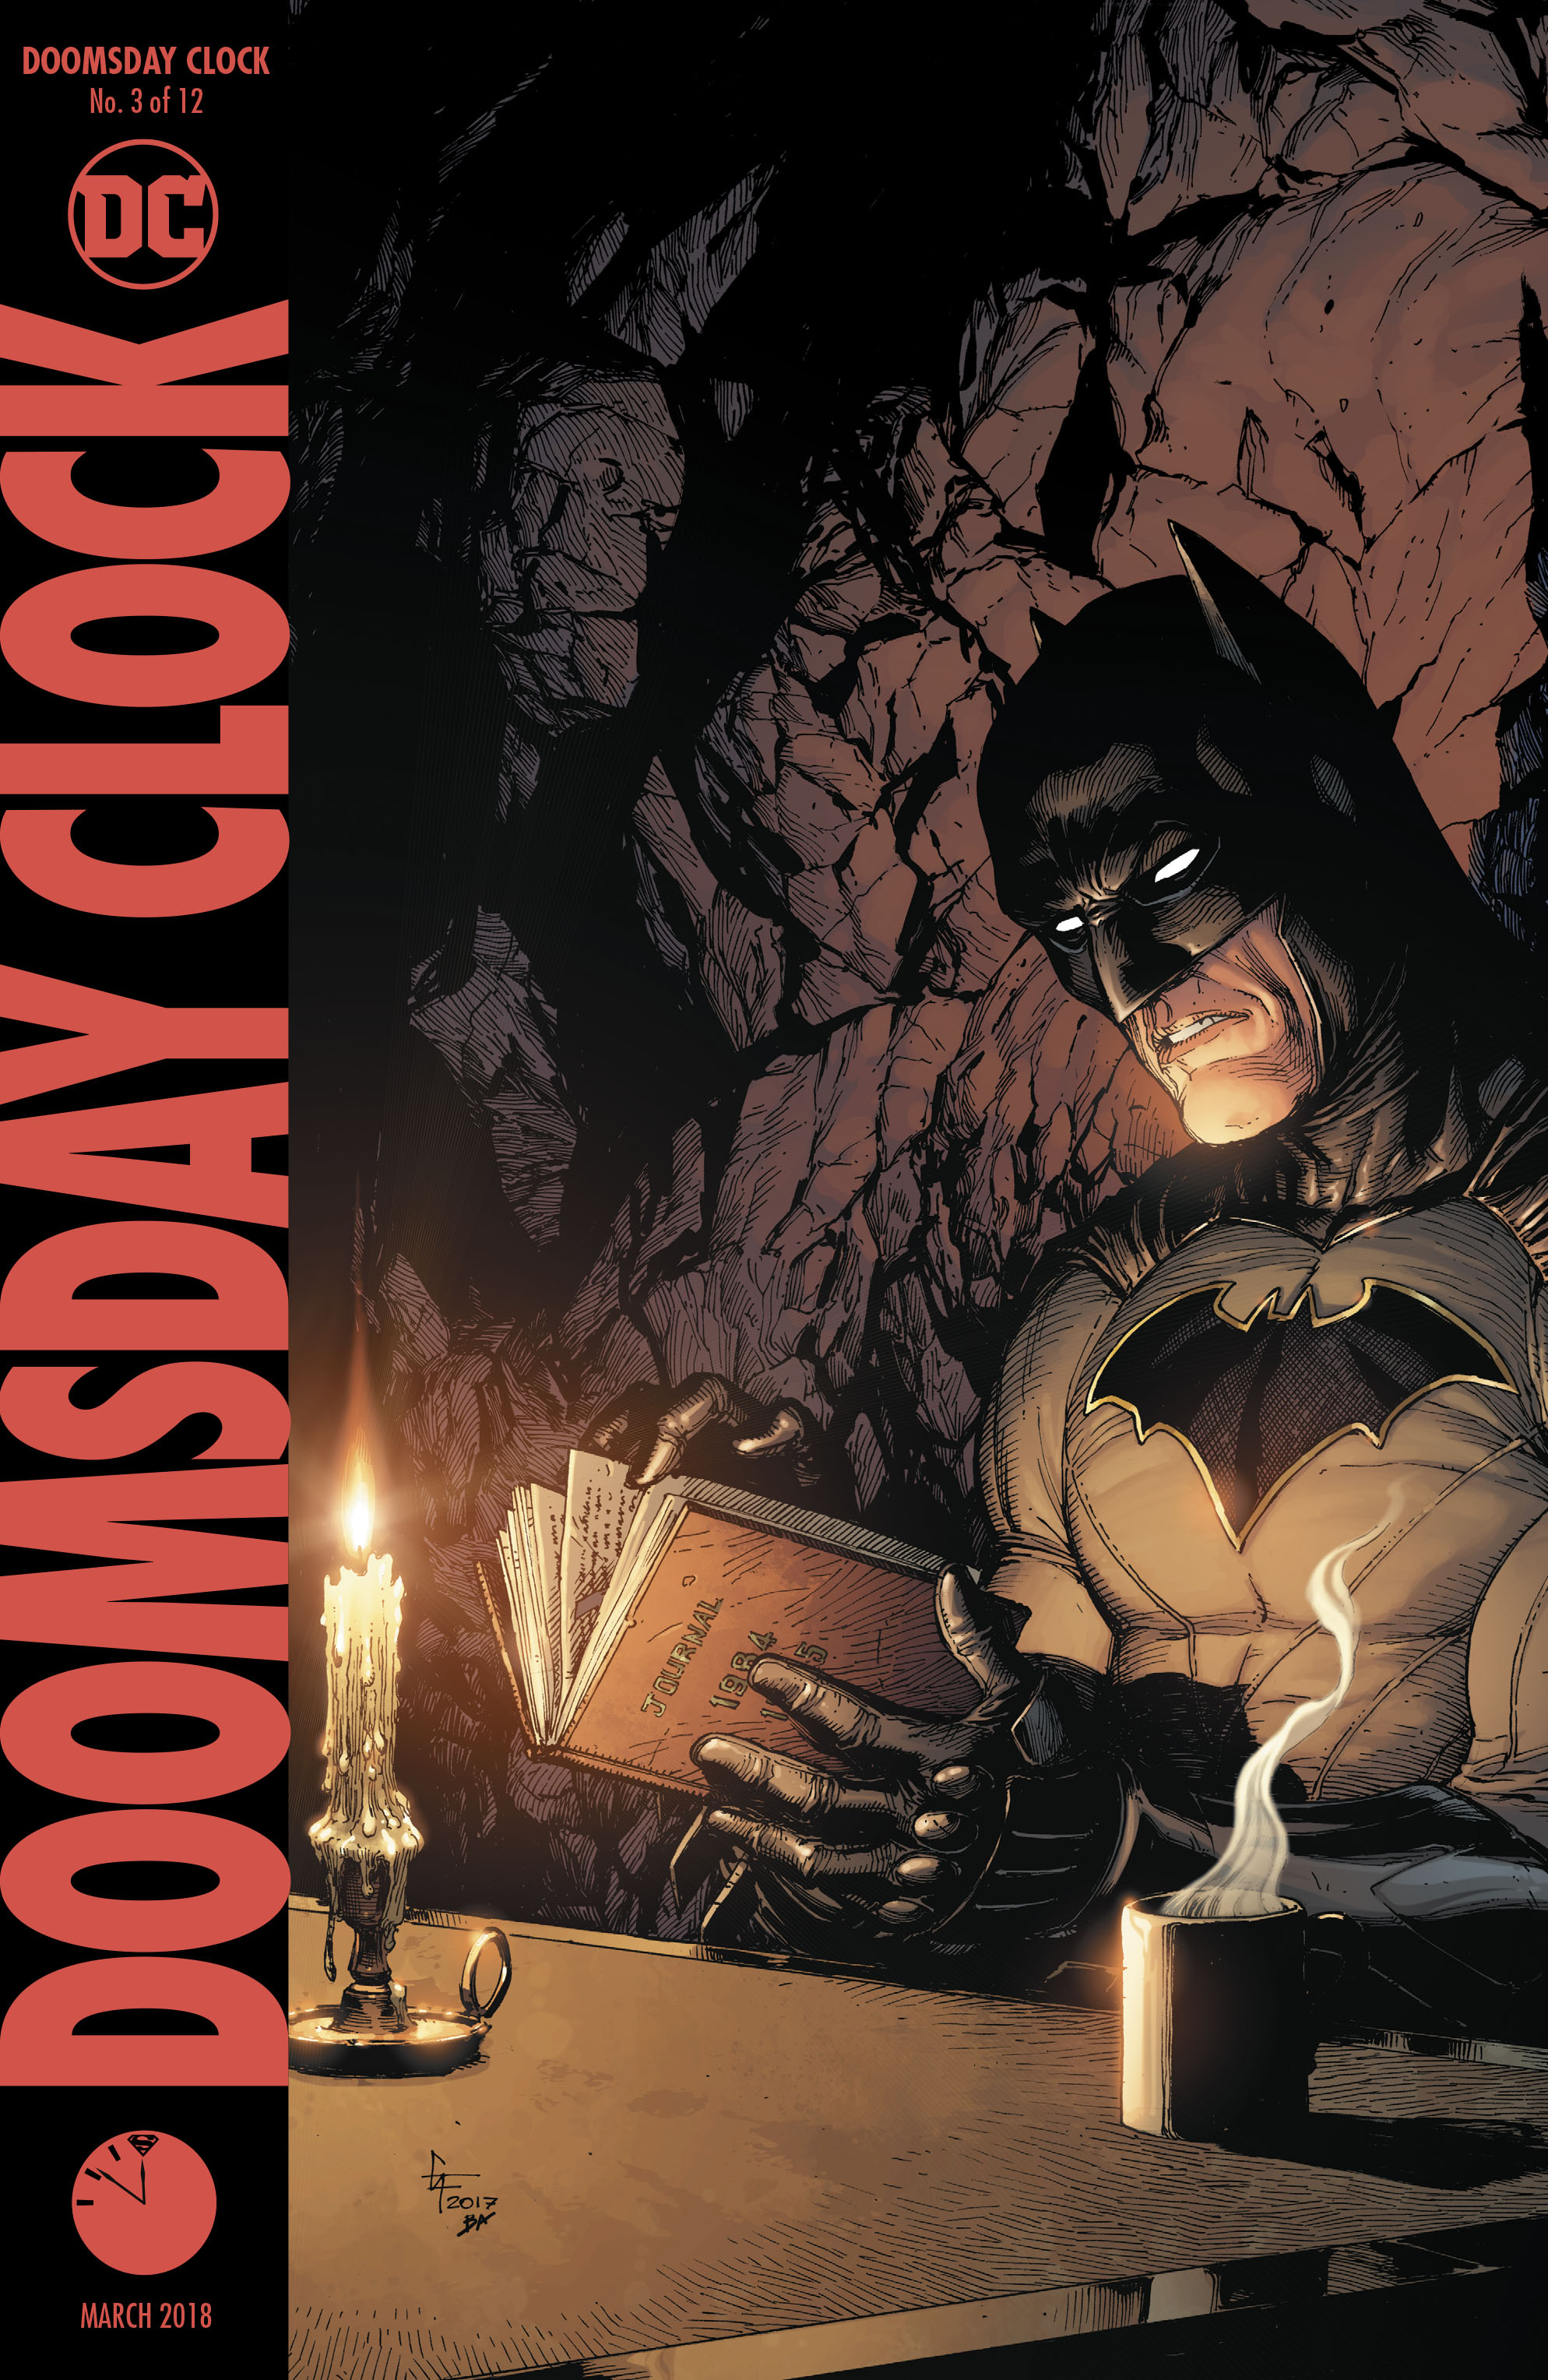 Doomsday Clock #3